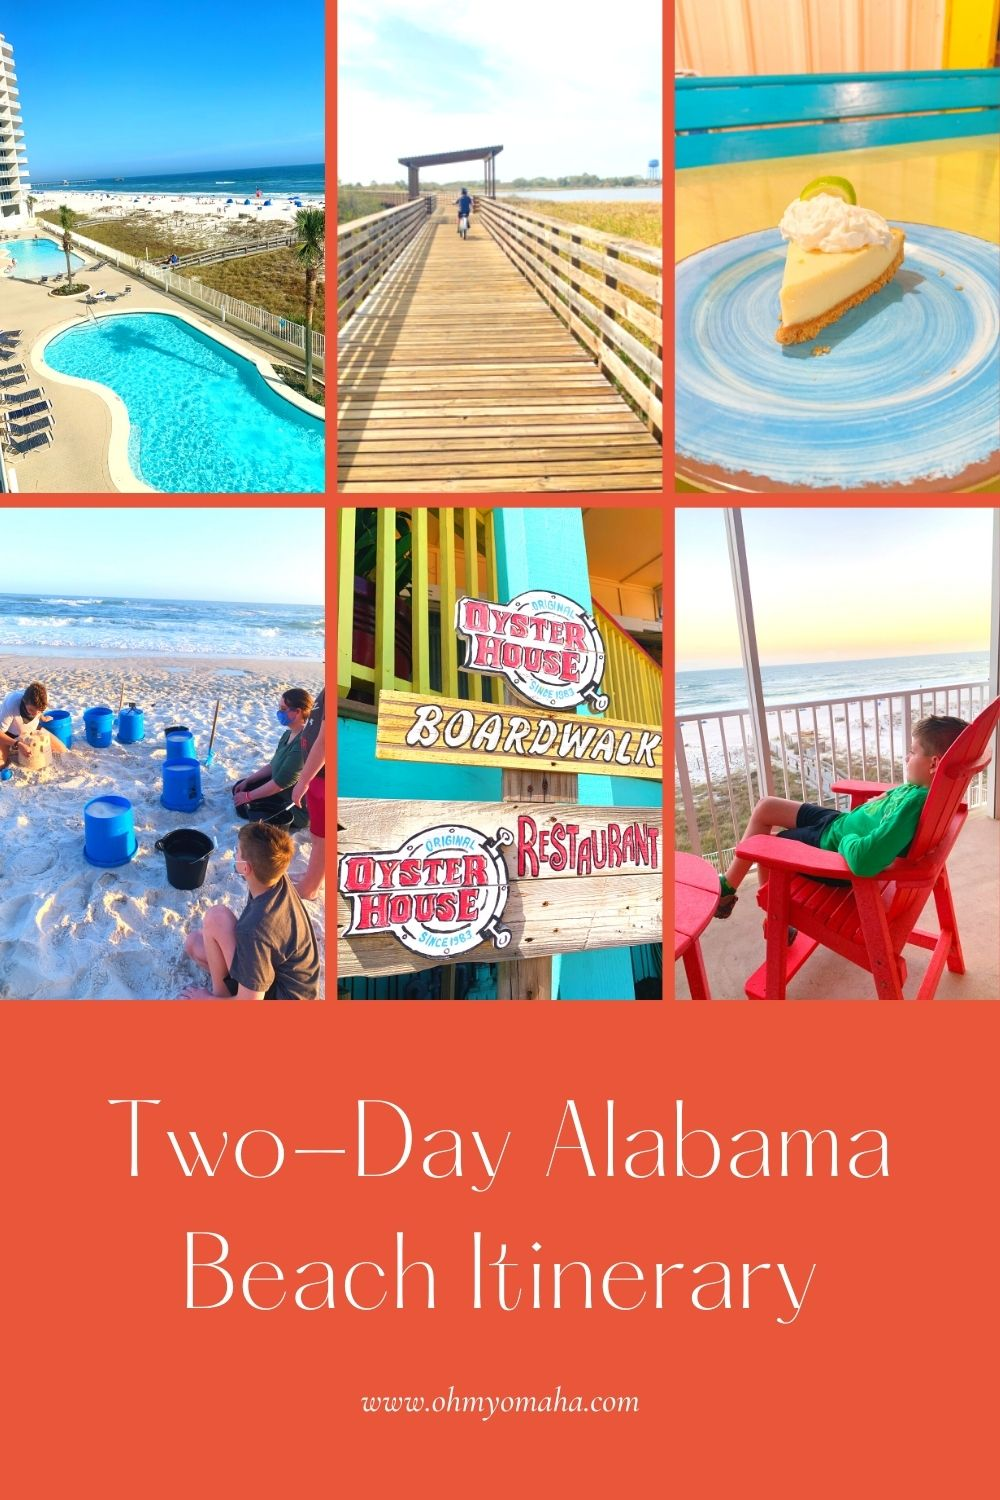 Tips and itinerary for the perfect Alabama beach vacation for families! Explore Gulf Shores & Orange Beach highlights including restaurants, activities, and beach fun.